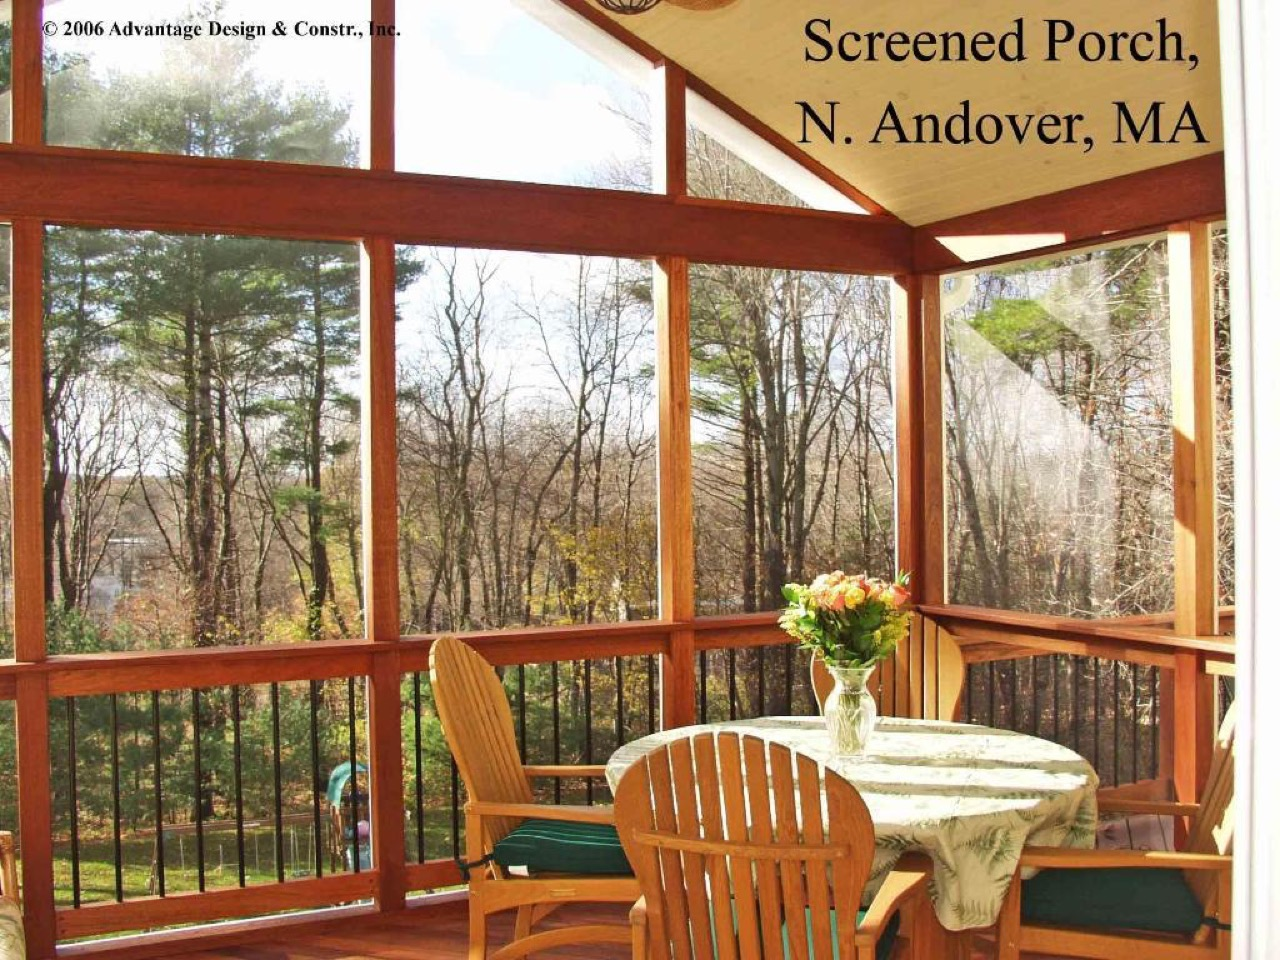 Imagine-a-screened-porch-to-enjoy-this-fall